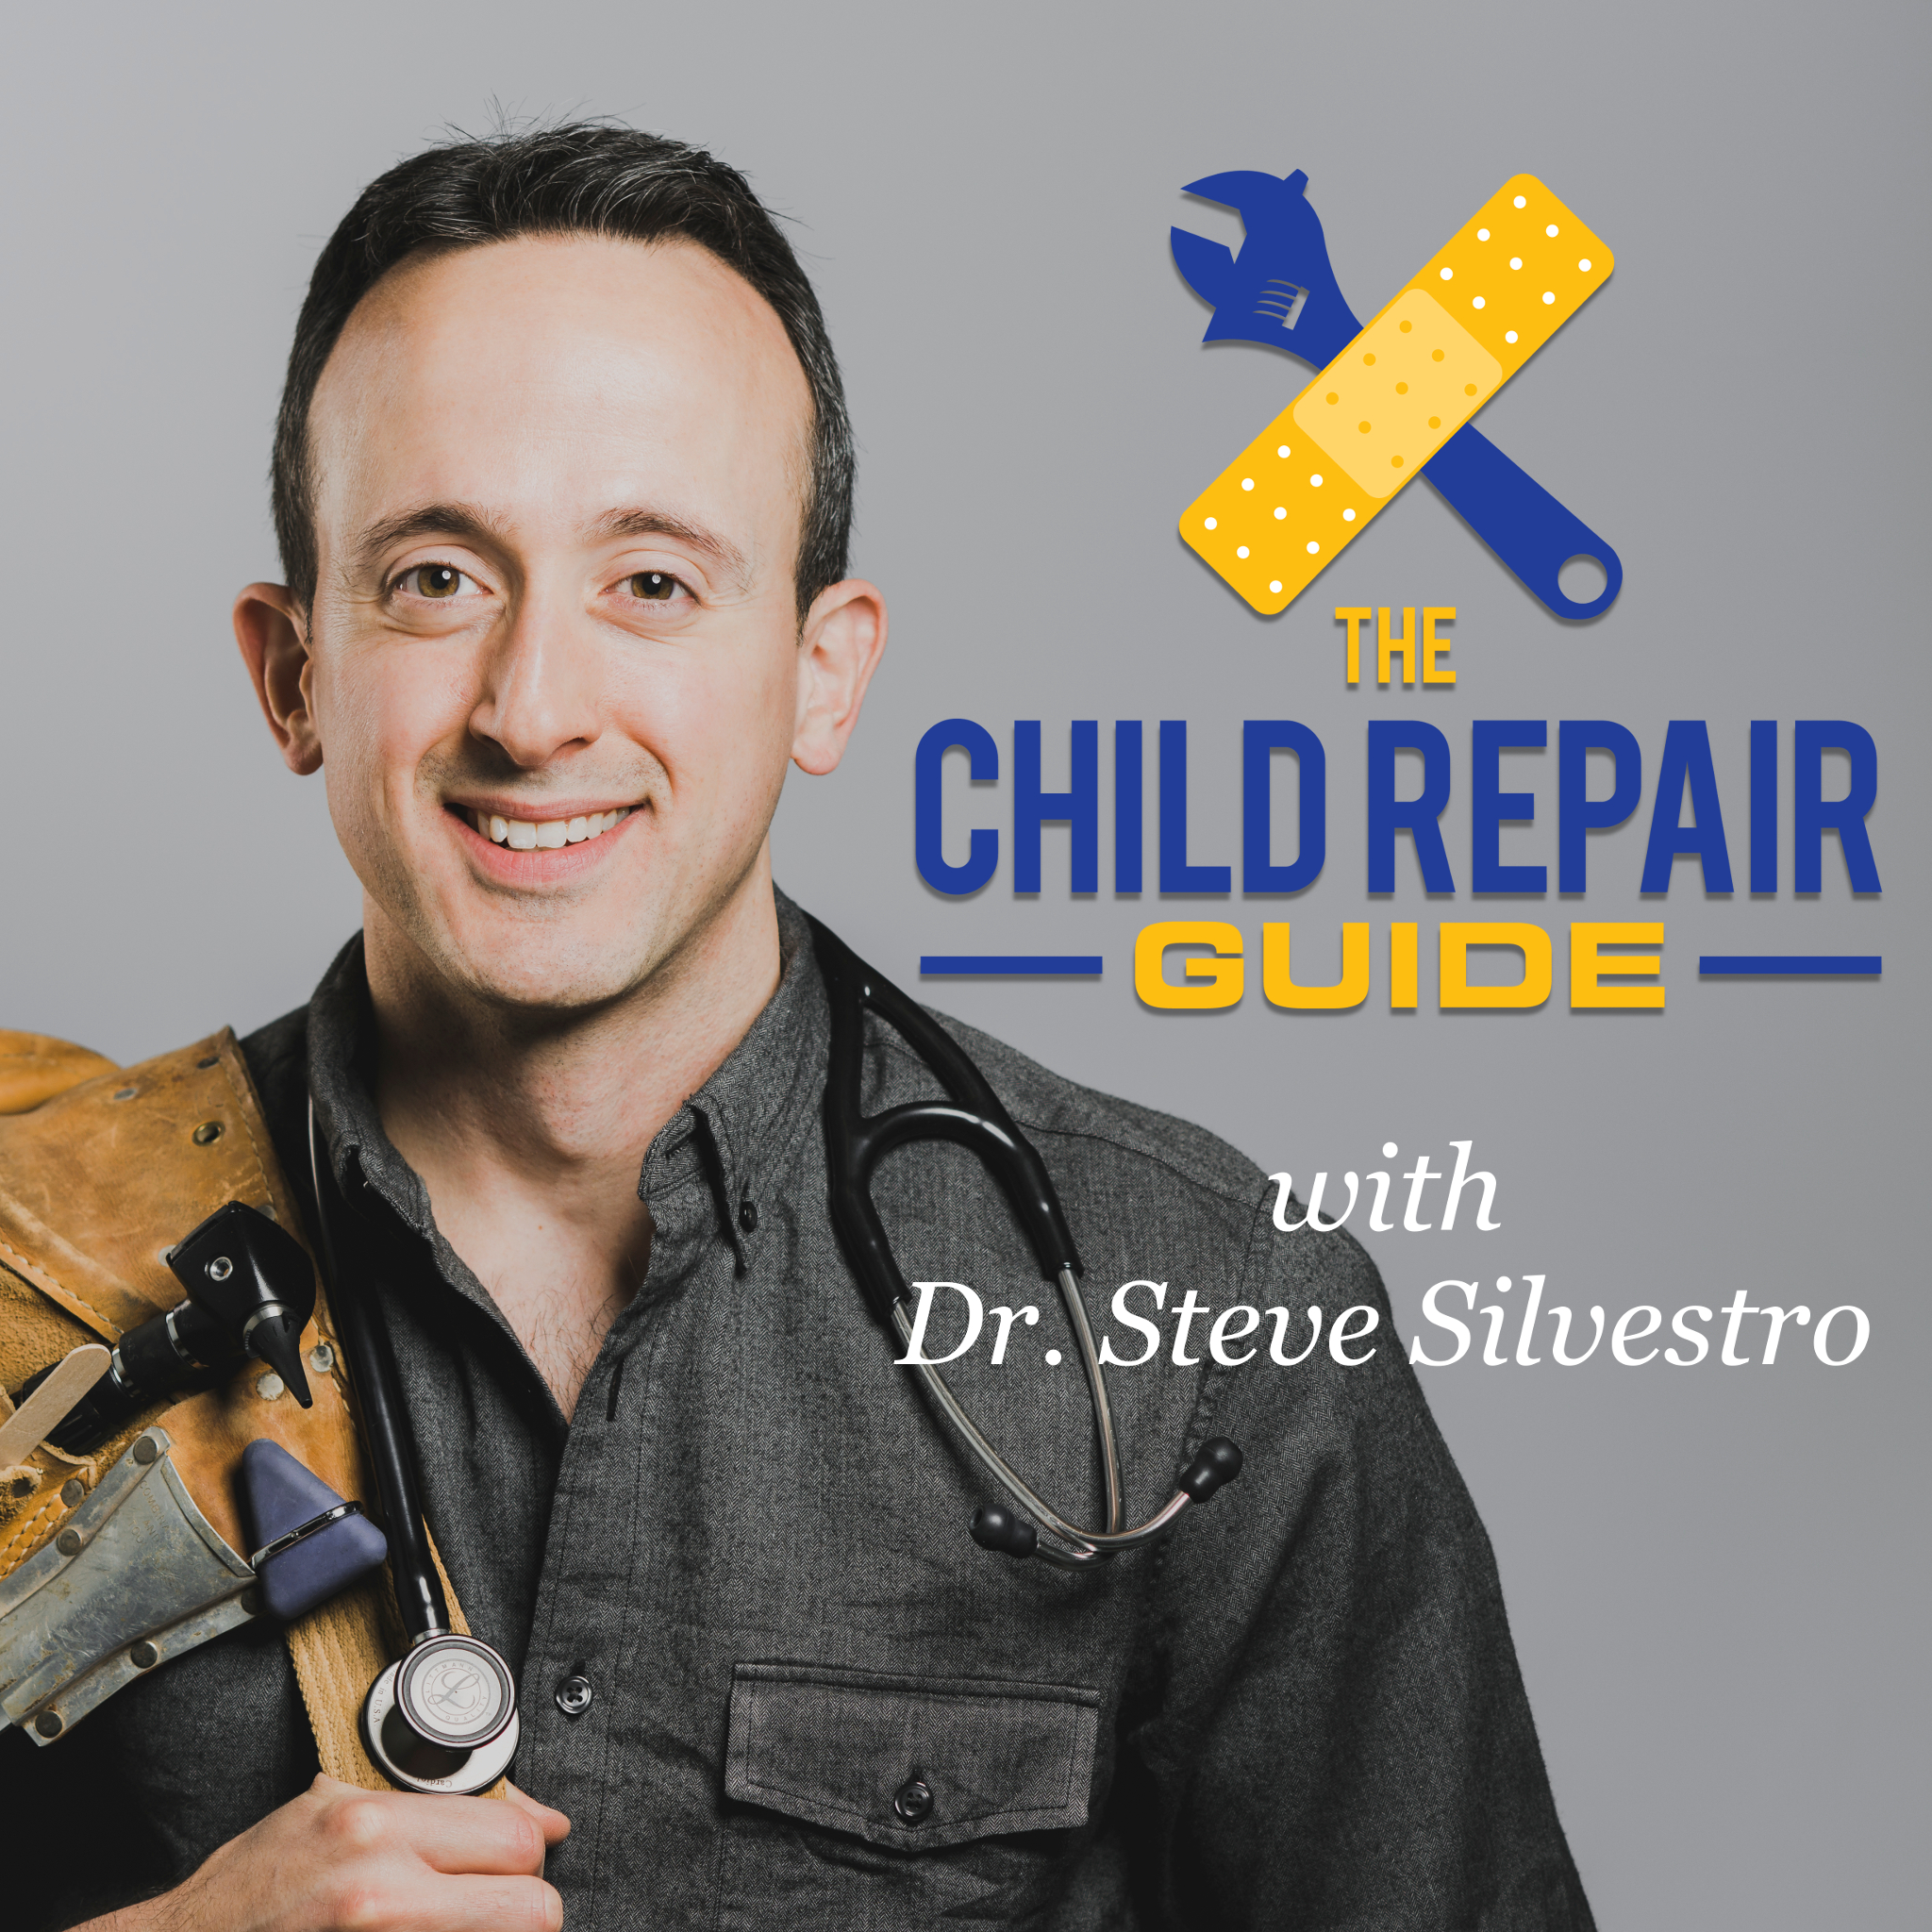 The Child Repair Guide Podcast